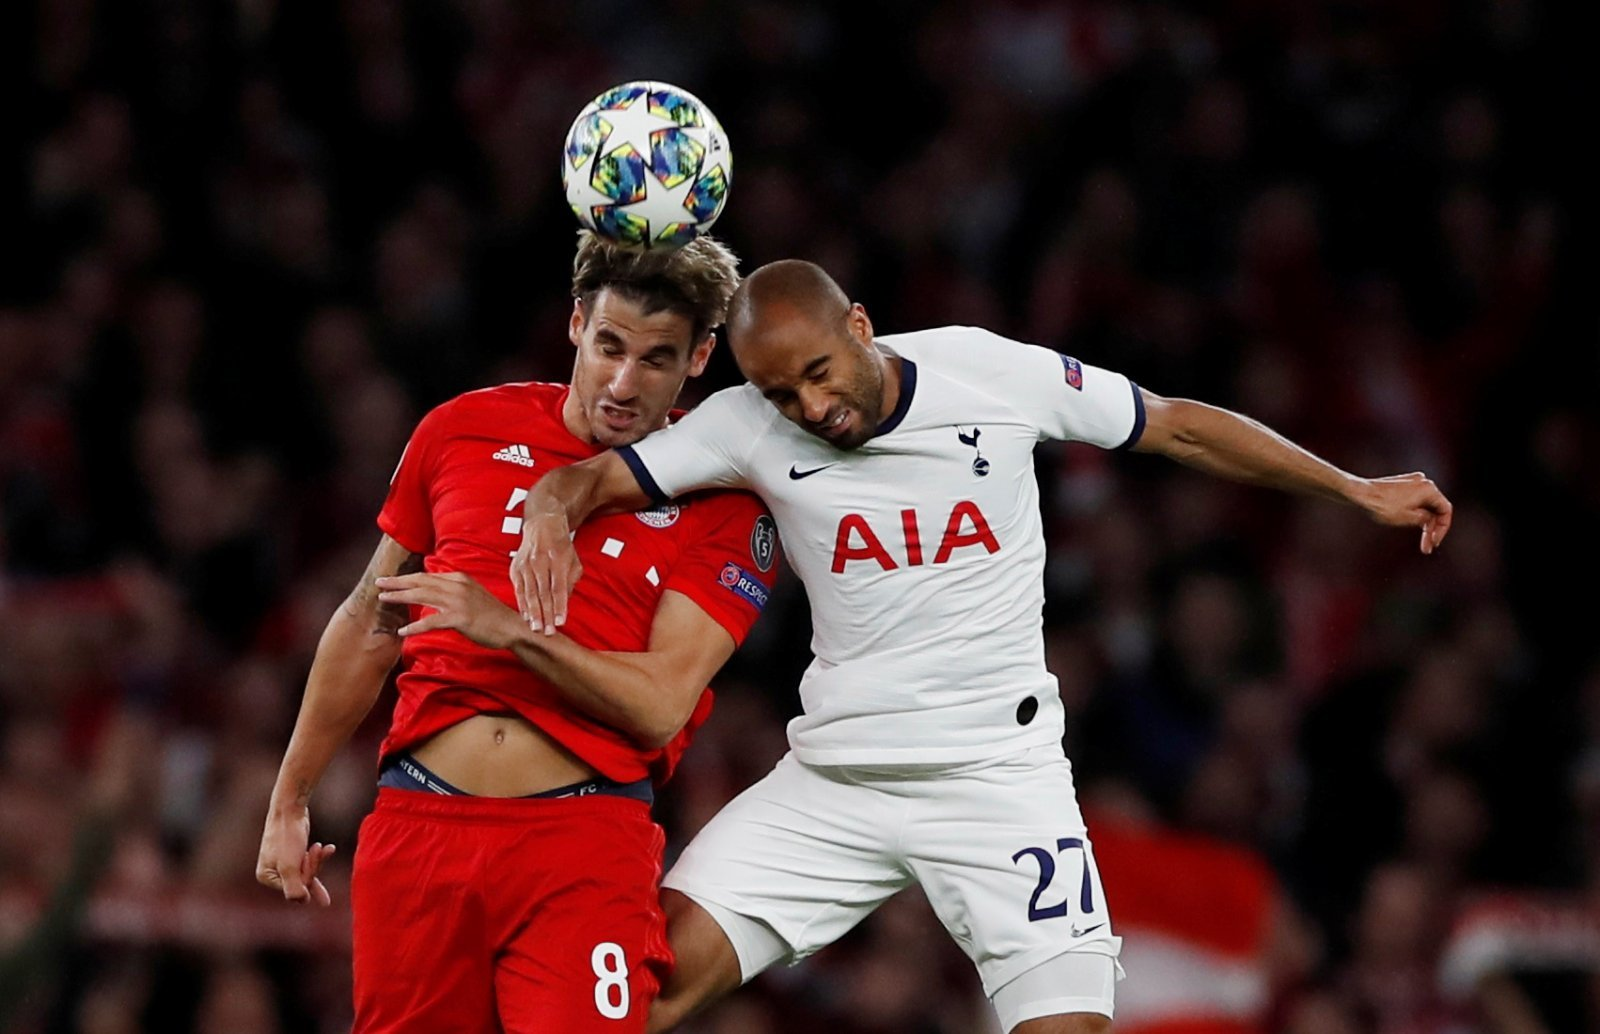 Tottenham Hotspur: Fans reacted to the moment Mauricio Pochettino brought on Lucas Moura